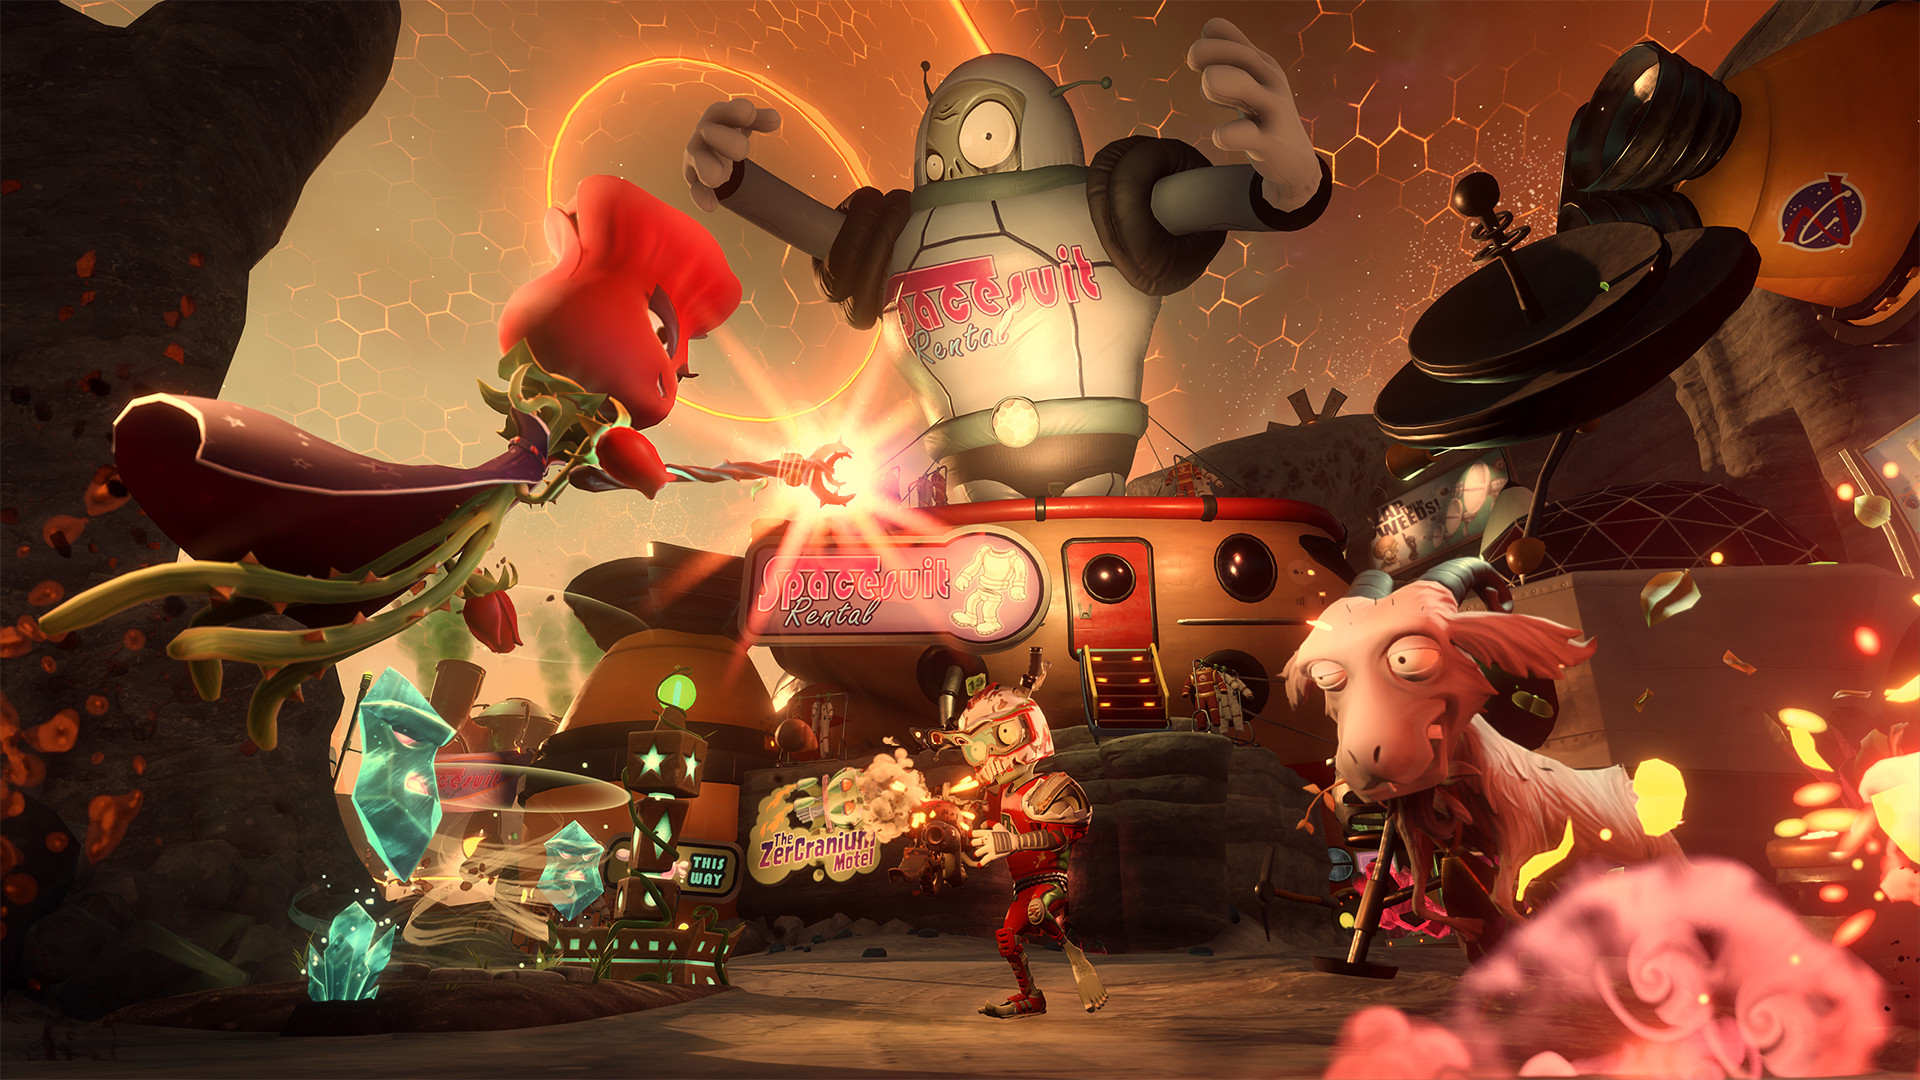 Kaufen plants vs zombies garden warfare 2 pc spiel - Plants vs zombies garden warfare 2 review ...